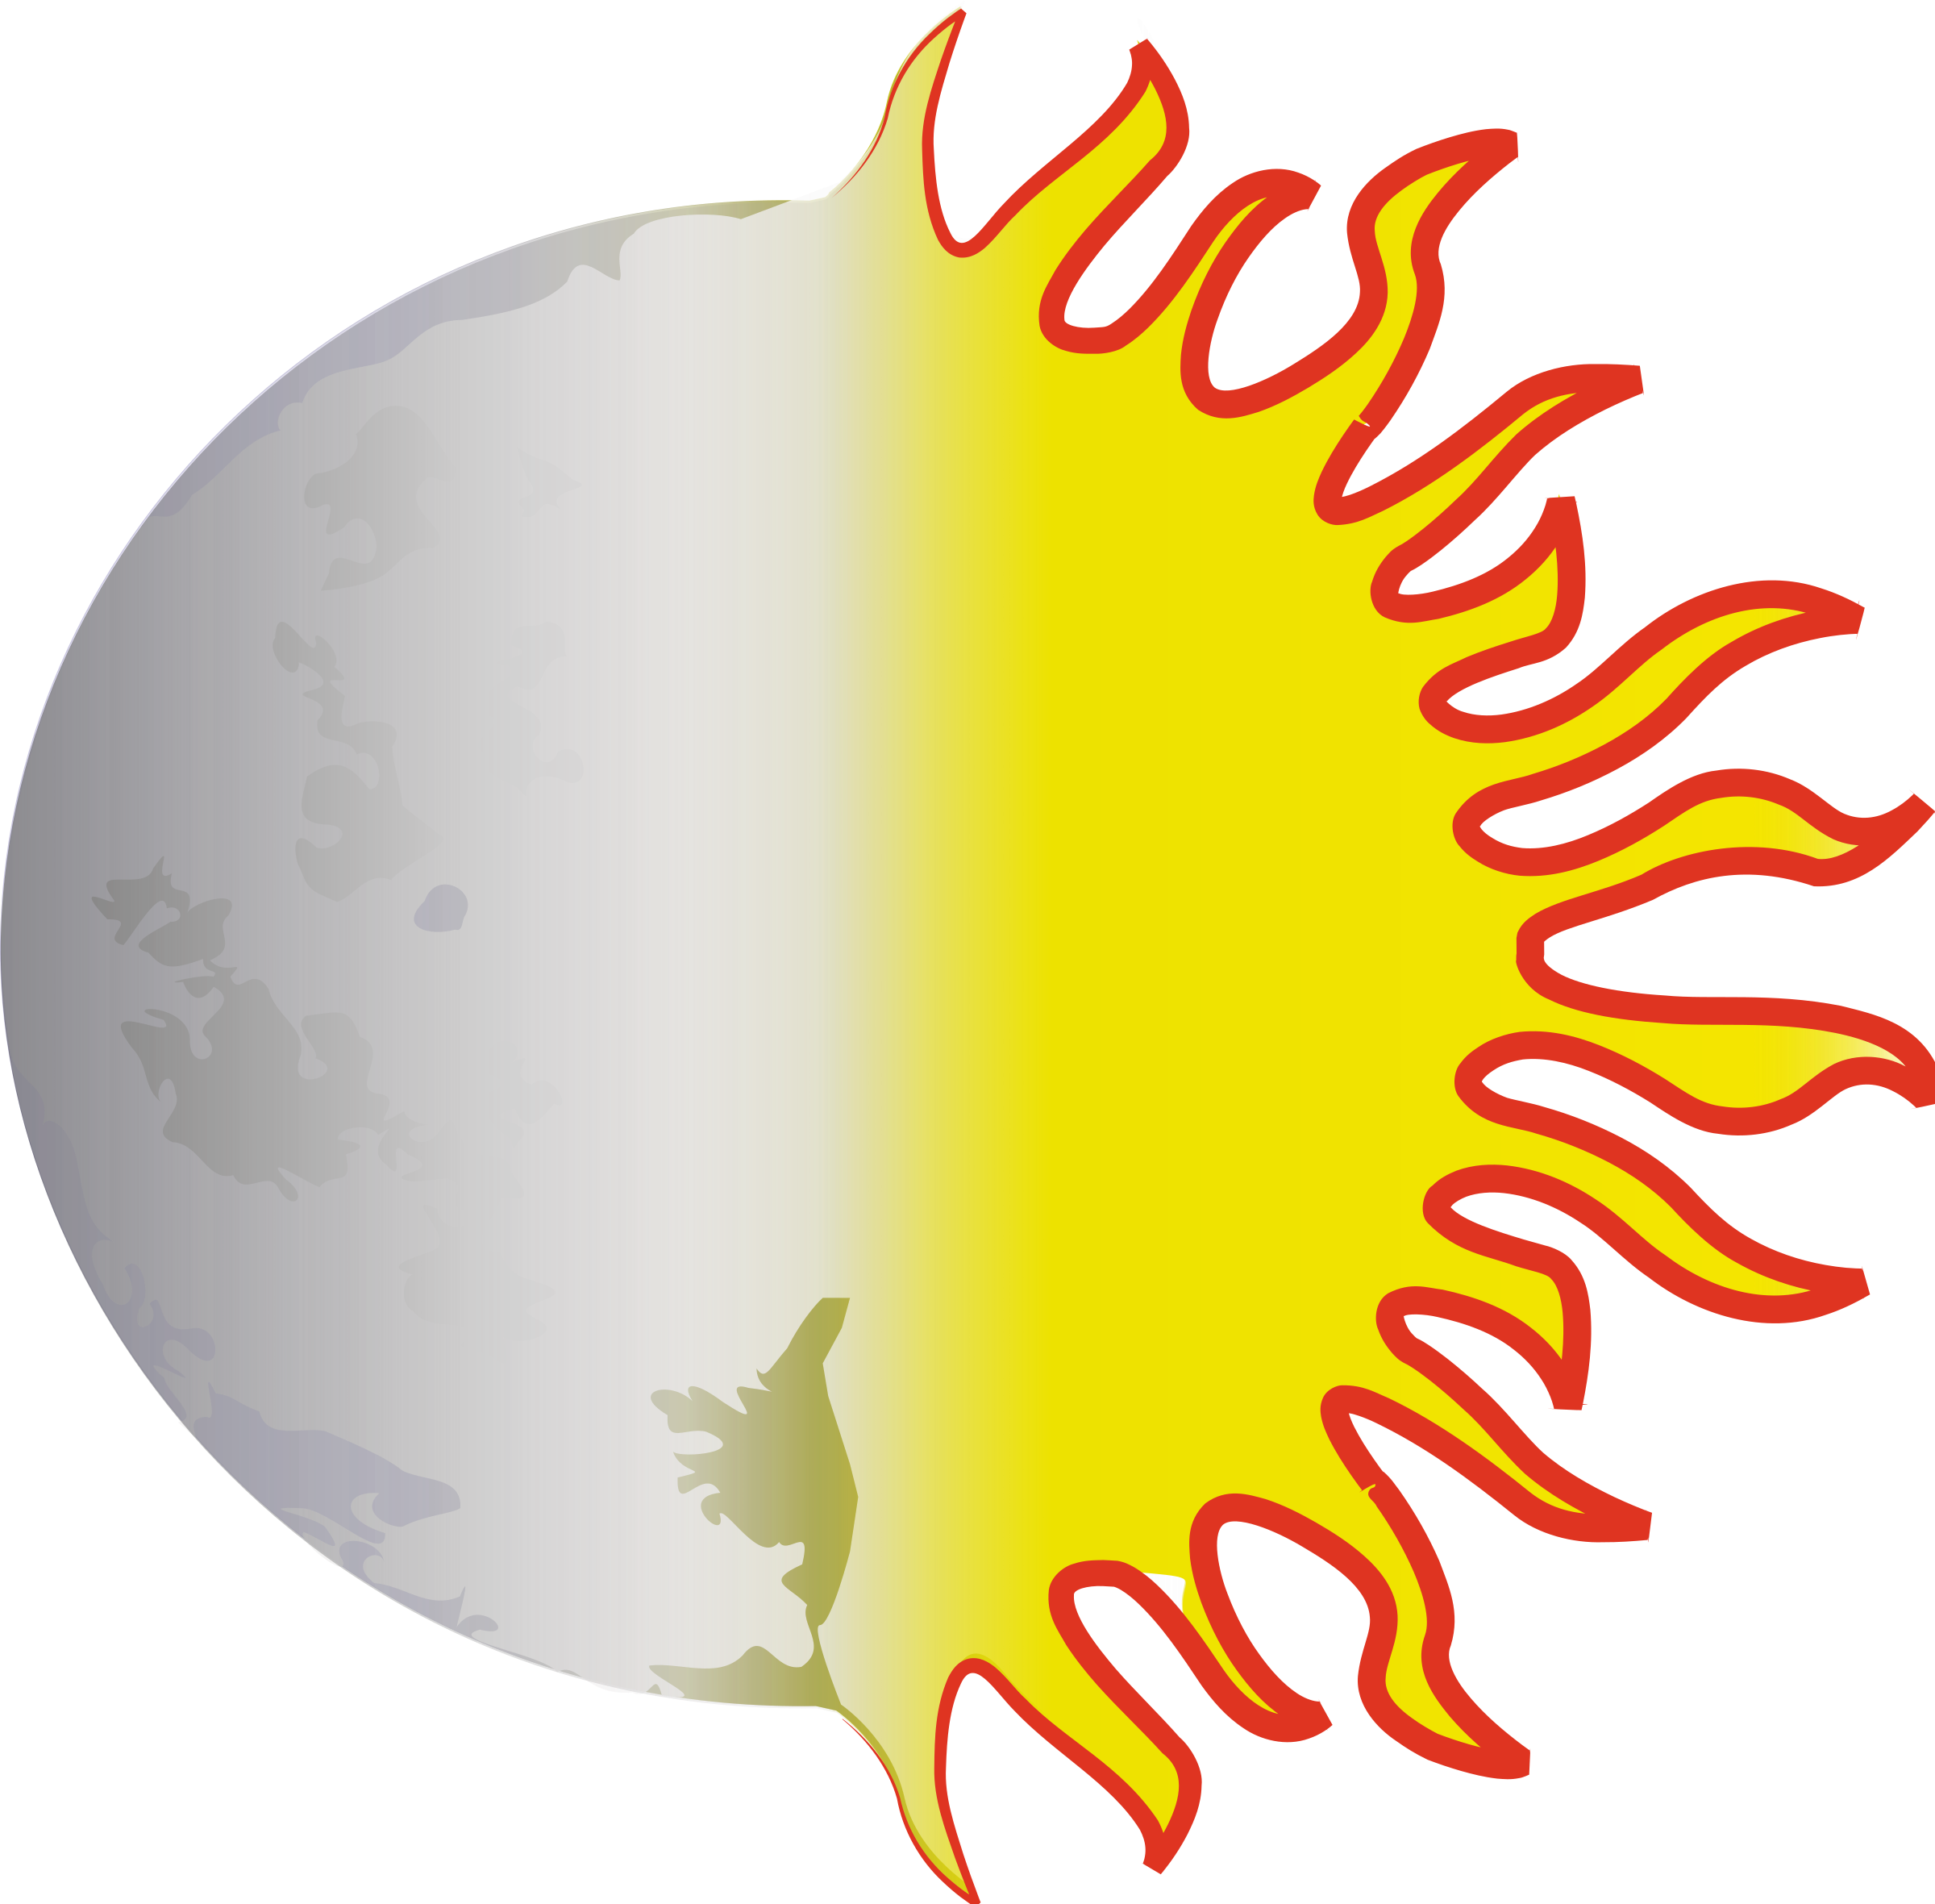 clipart image of moon - photo #44